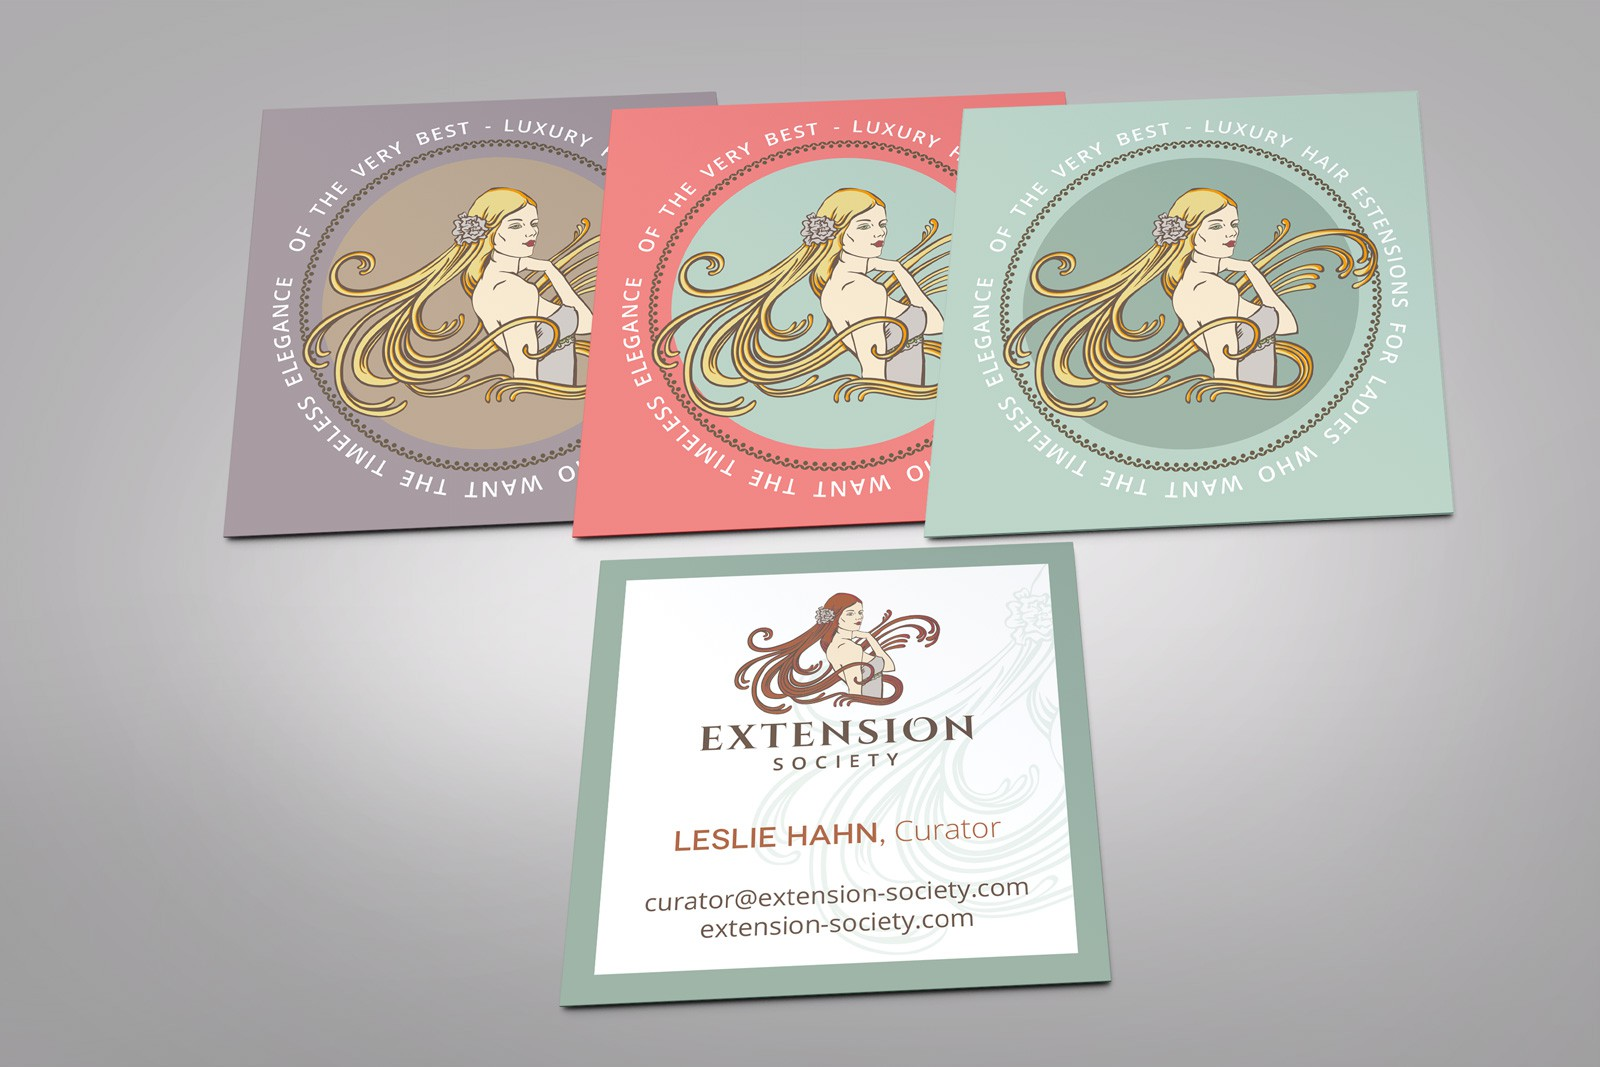 Hair Extension Co. seeks creative and elegant ideas for business card.